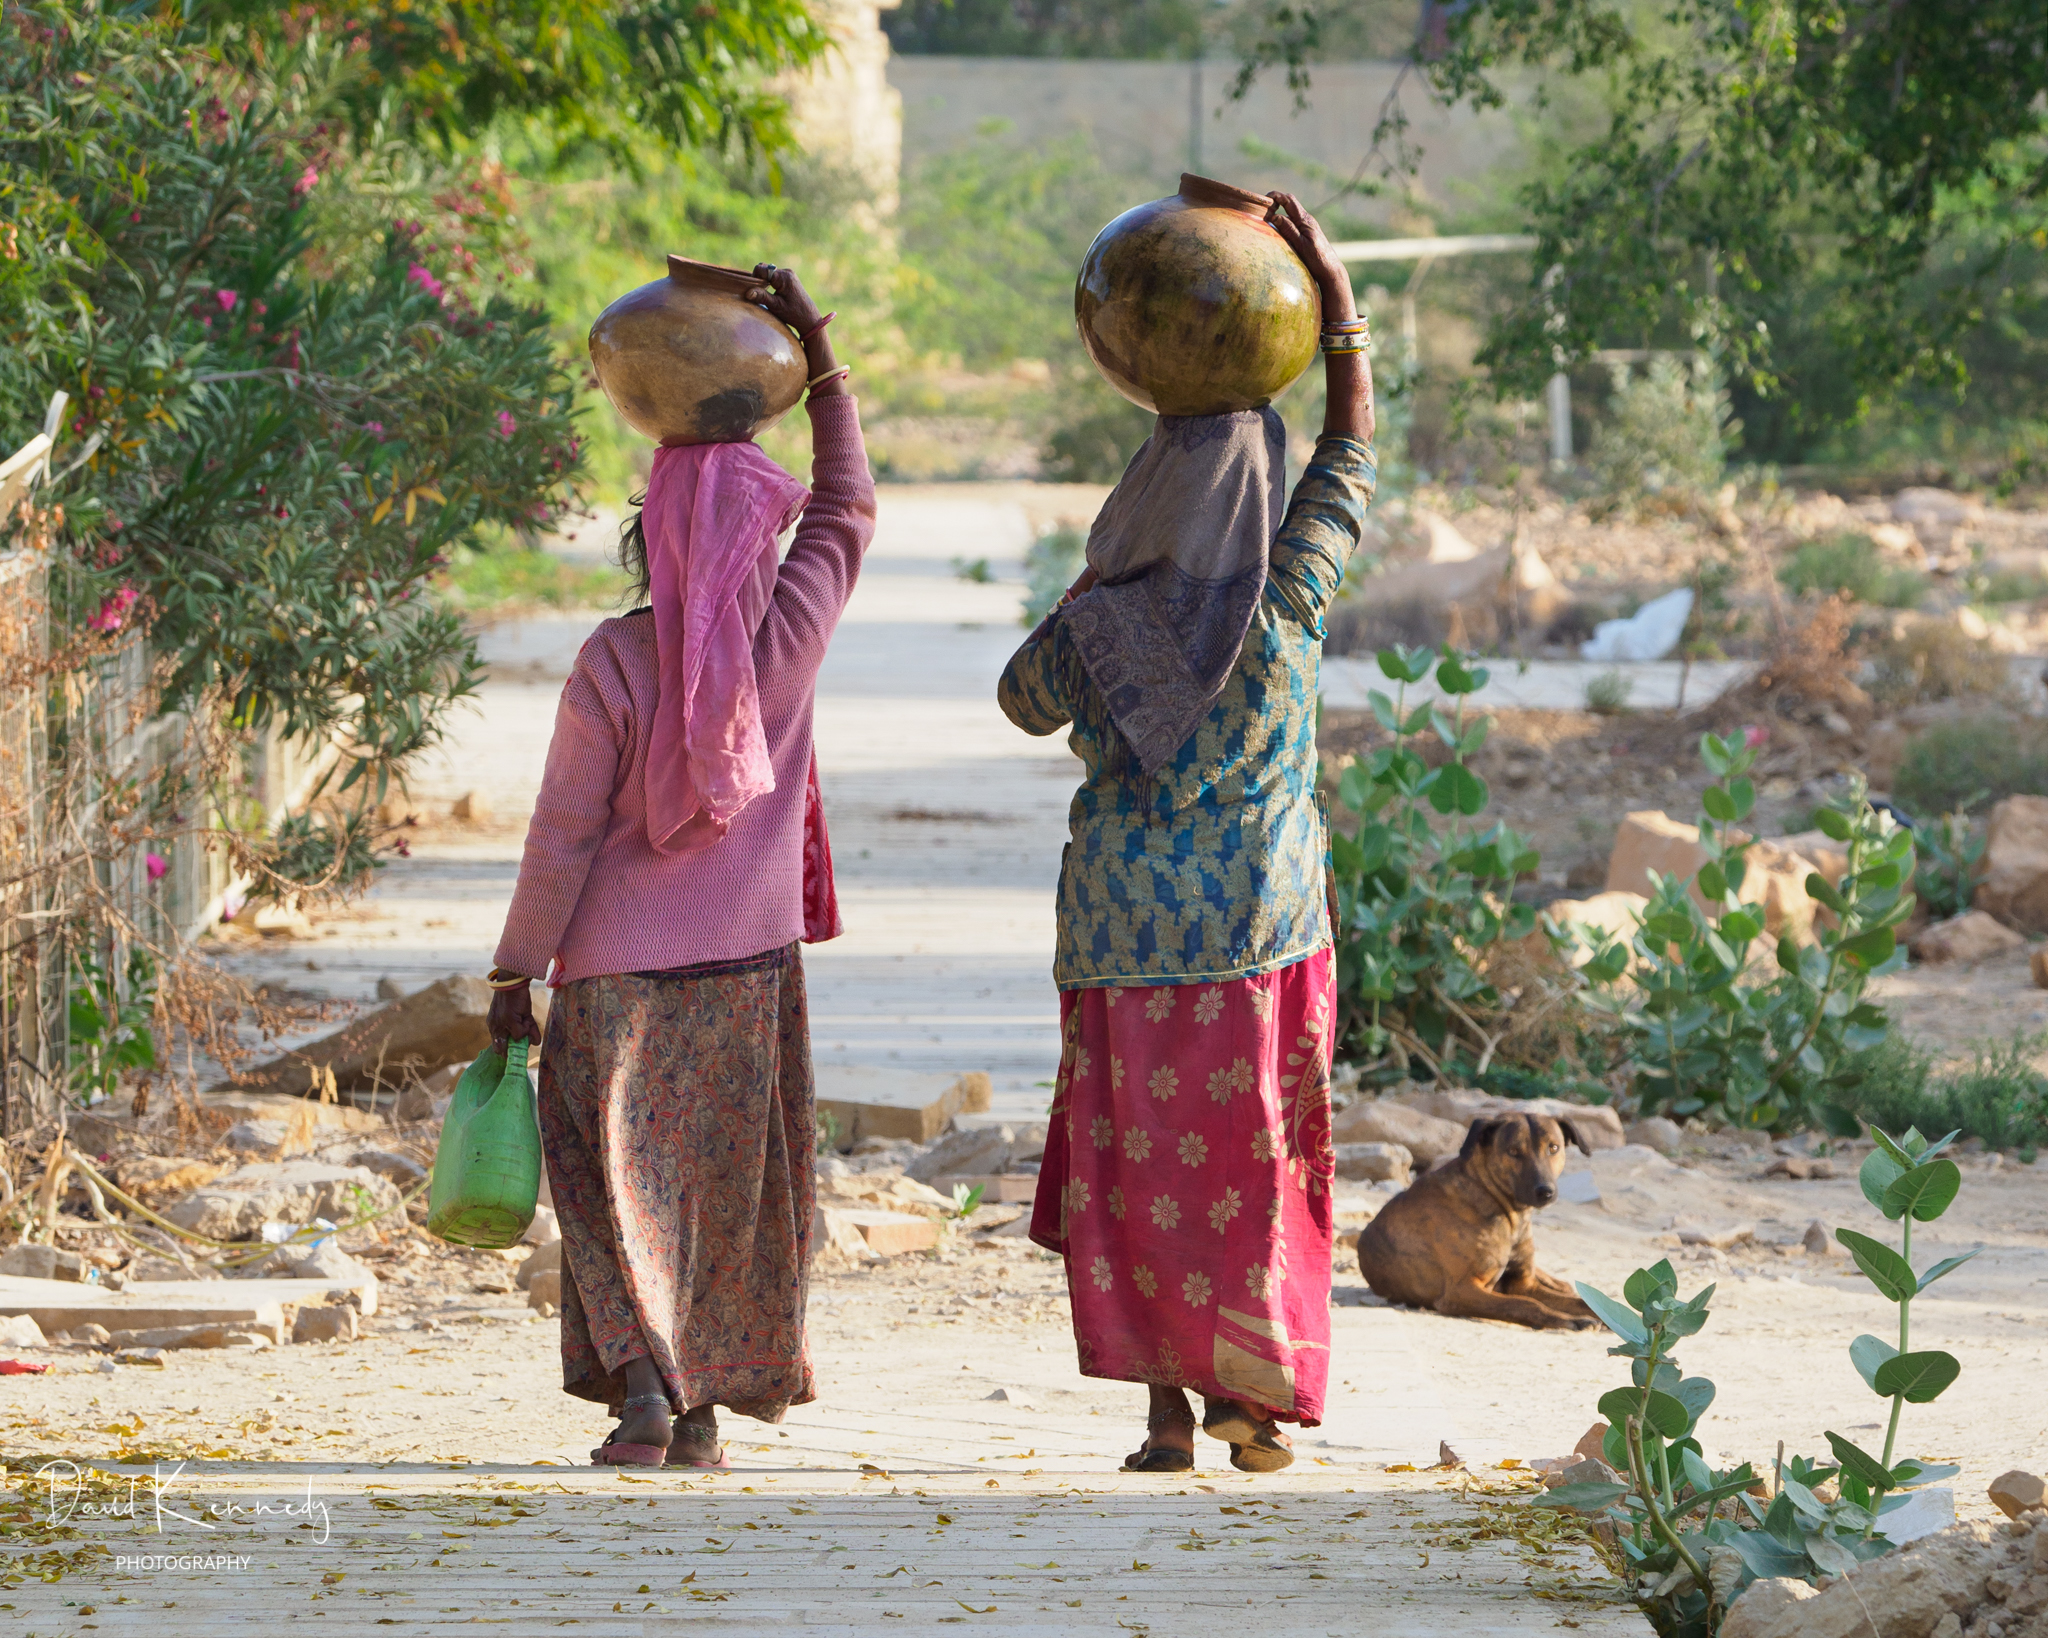 Women carrying bowls of water on their heads